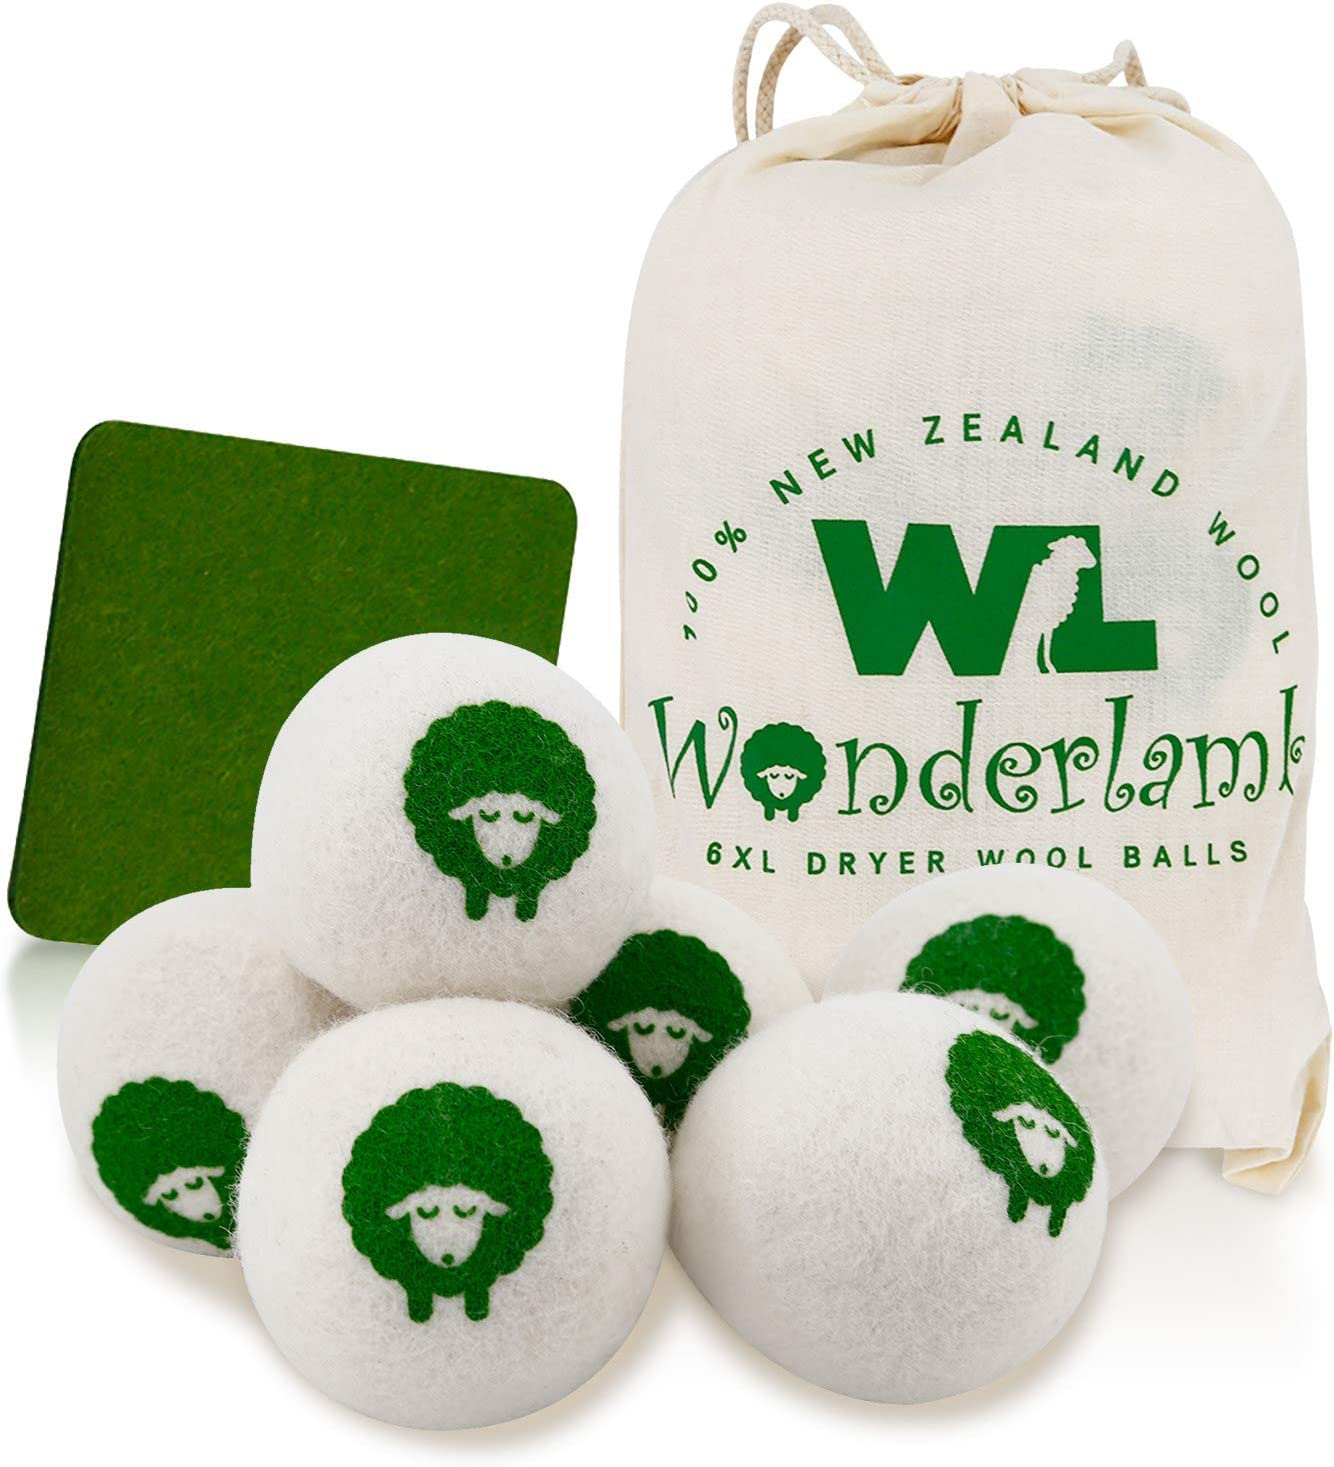 Amazon Com Wool Dryer Balls By Wonderlamb 6 Packs Xl Reusable Organic Natural Wool For Laundry Lint Free Anti Static Ball Dryer Fabric Softener And Dryer Sheets Replacement Unscented And Baby Safe Electronics